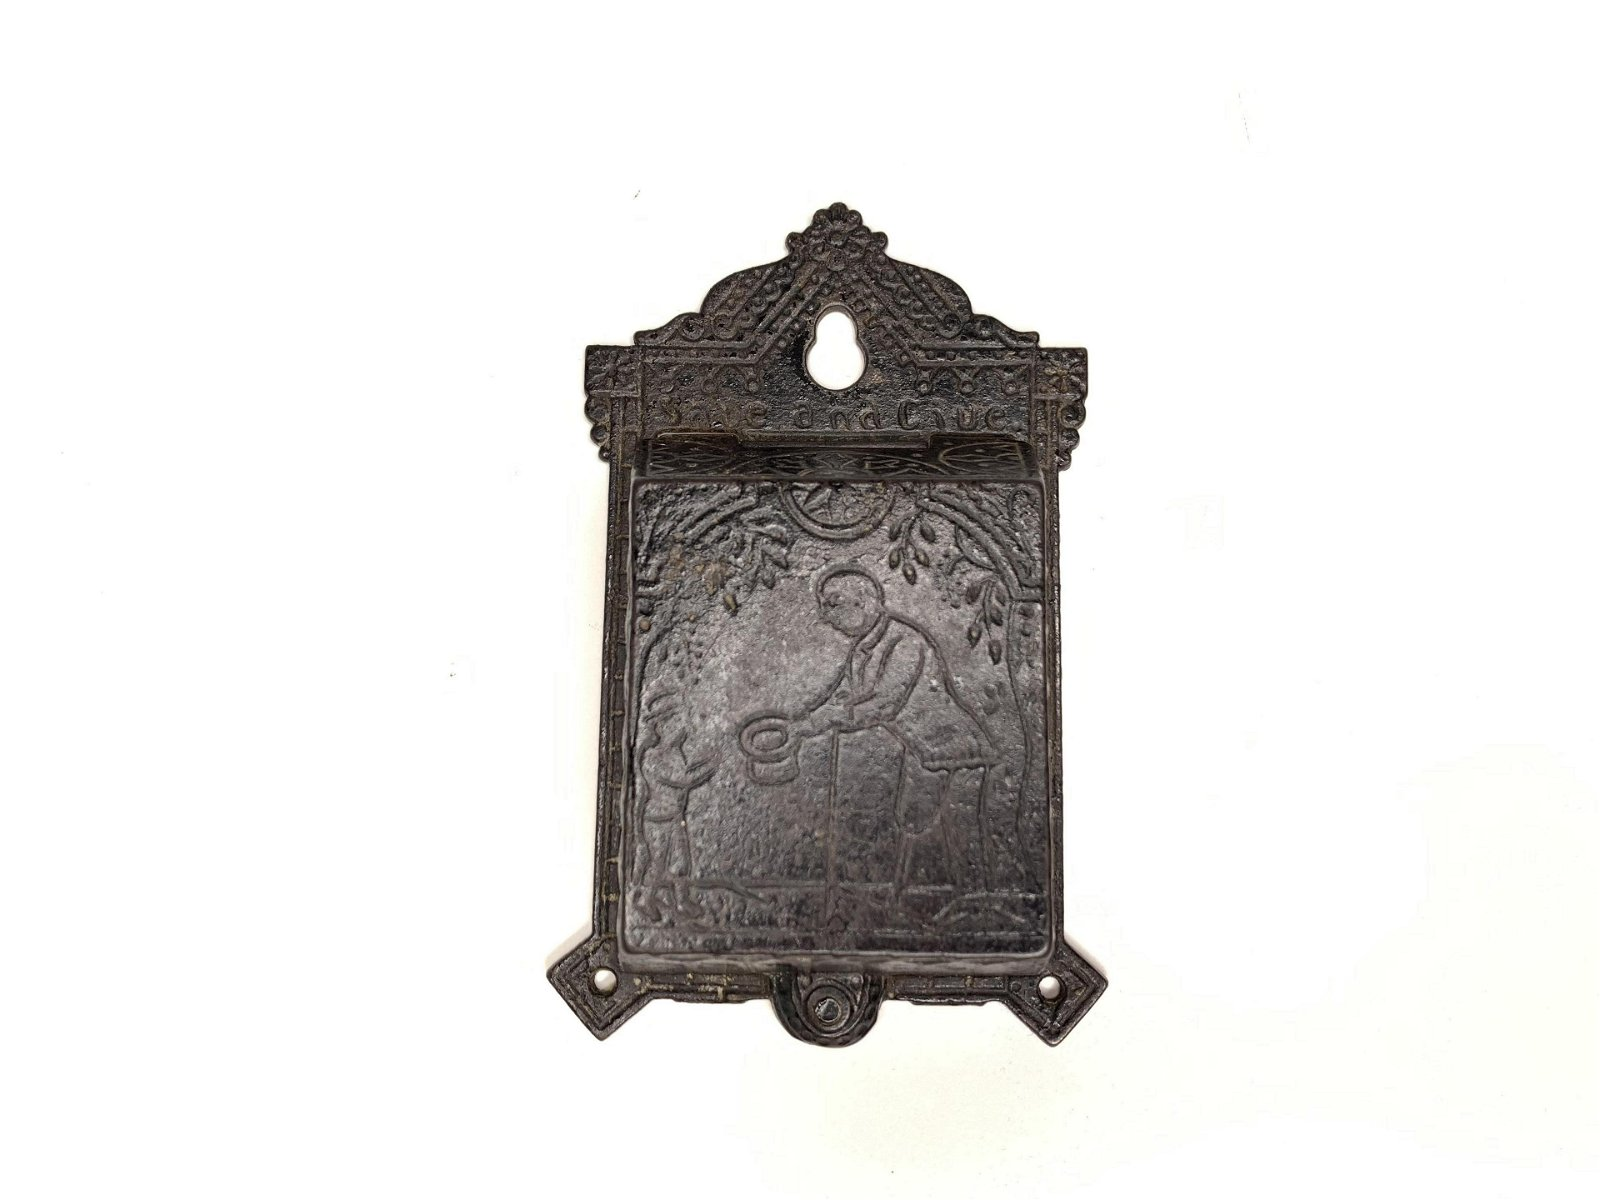 Save and Give Cast Iron Hanging Still Bank